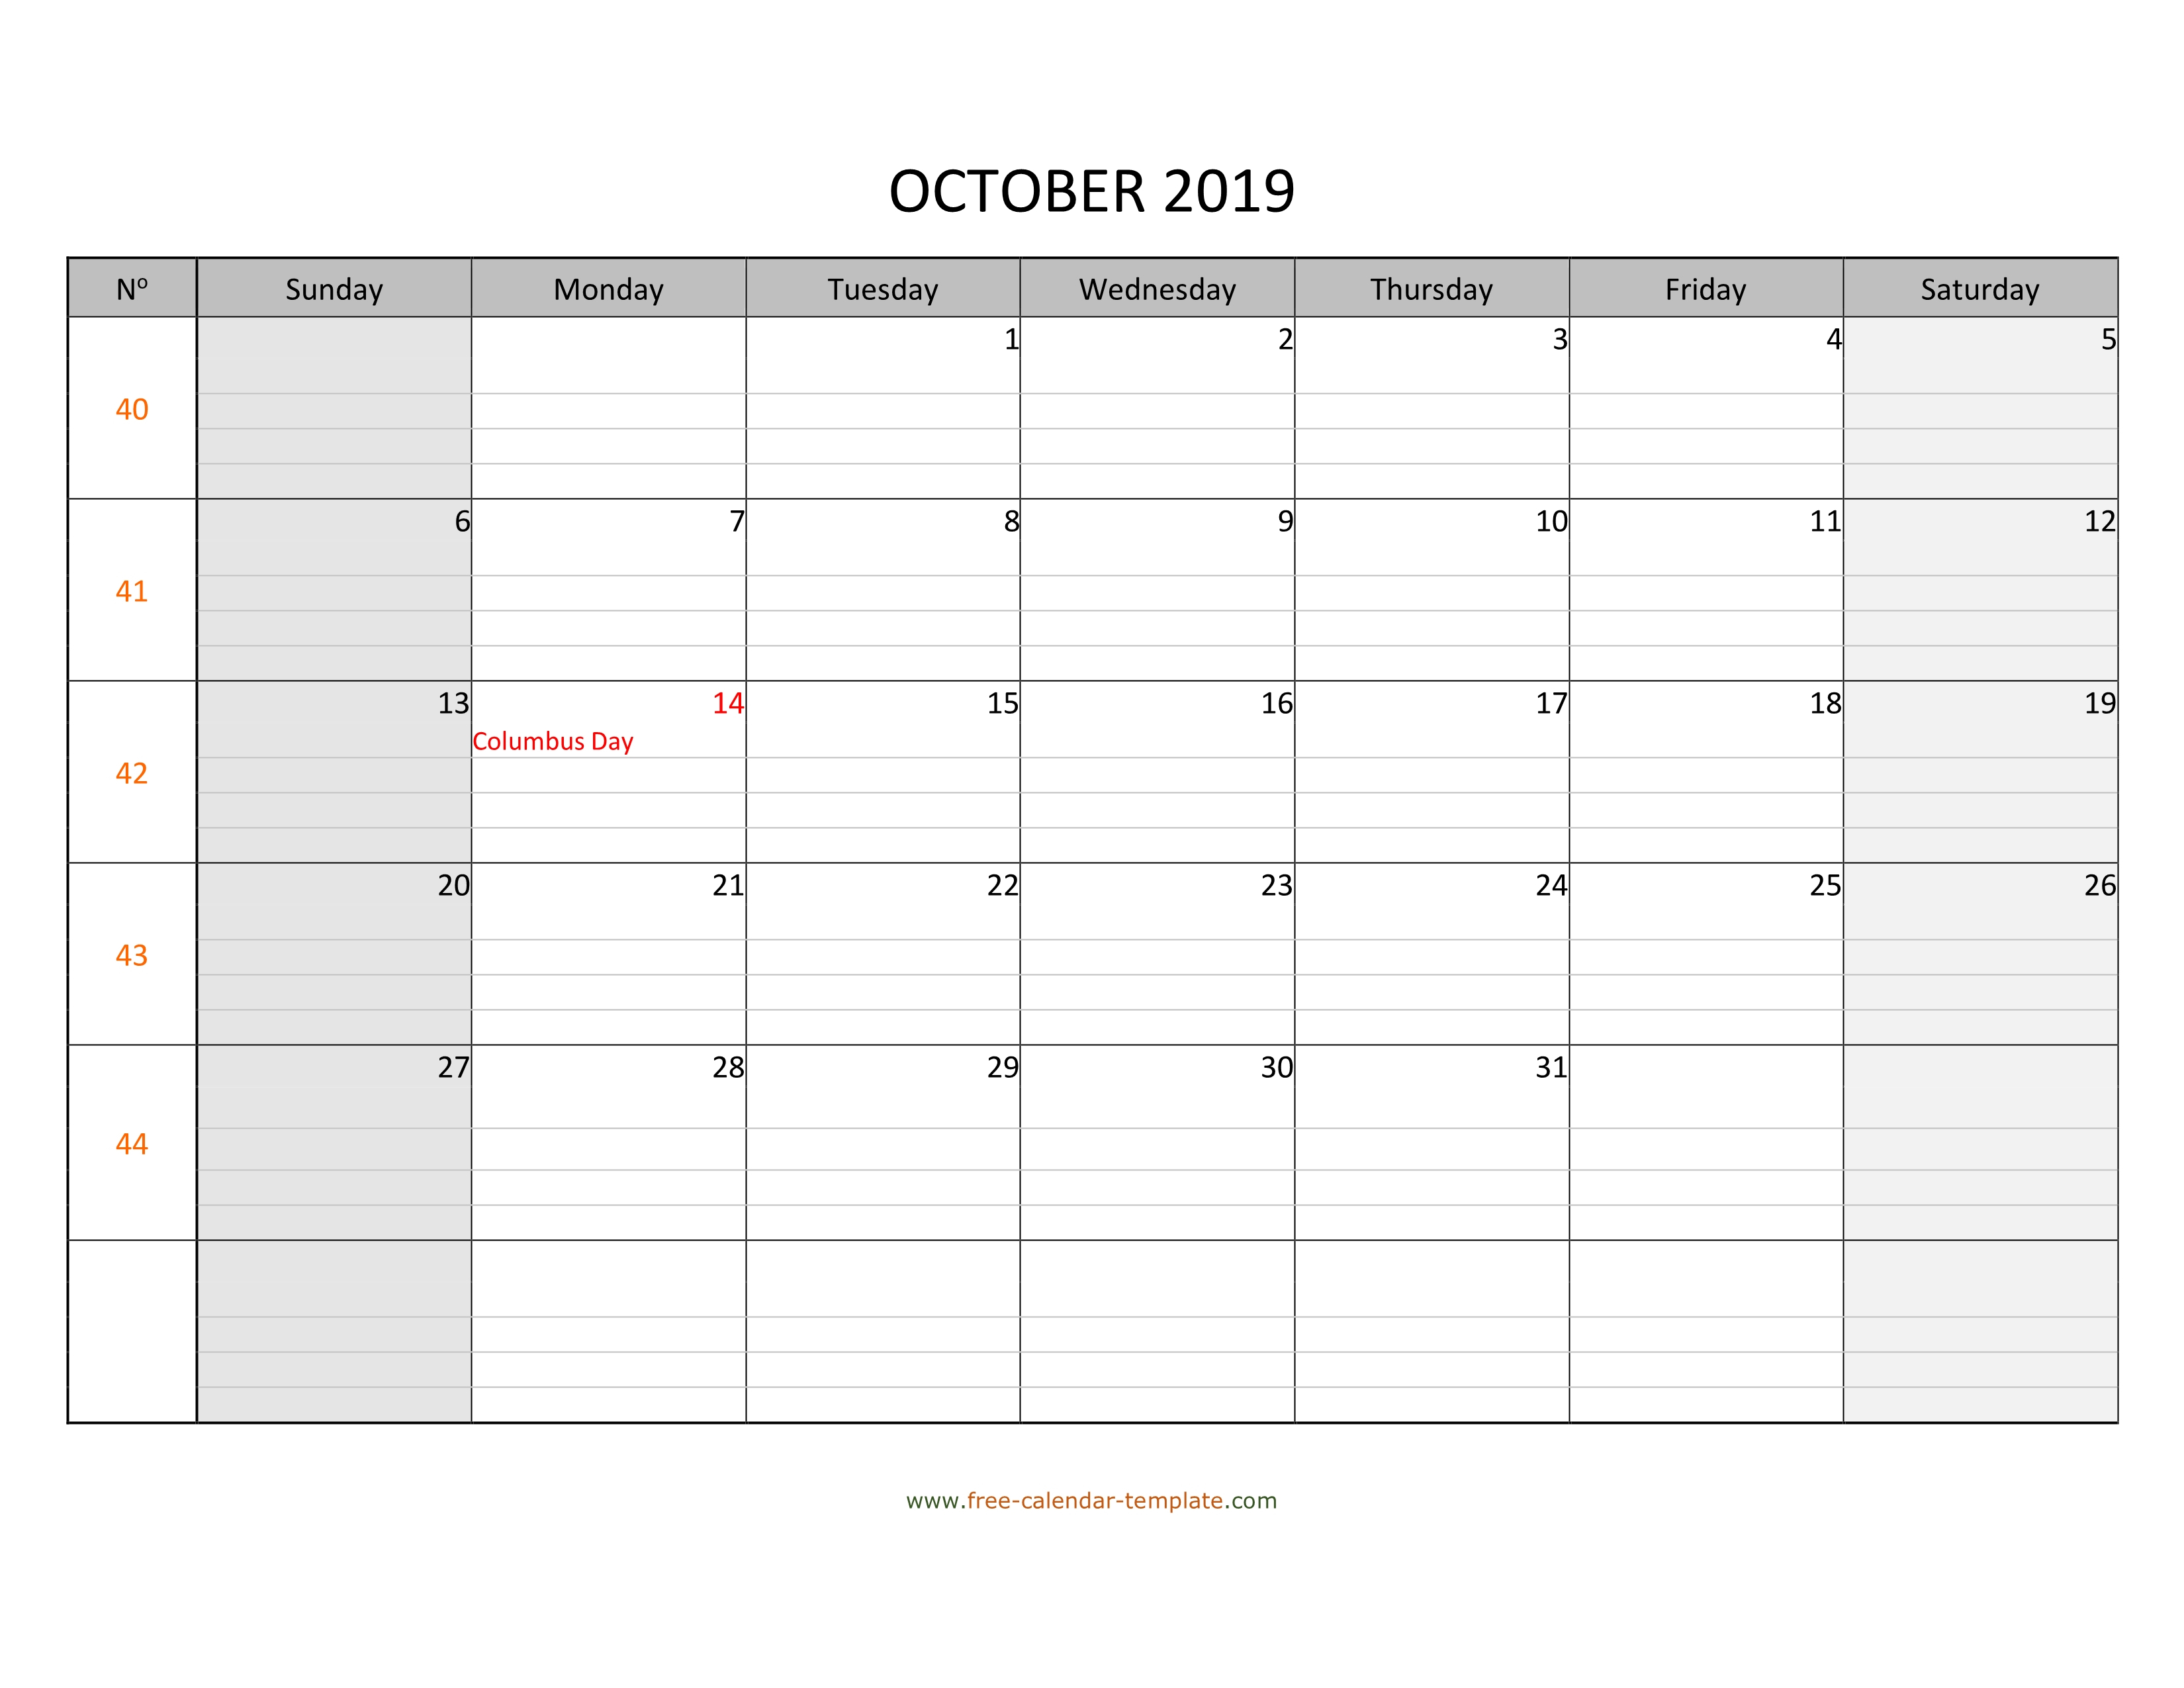 October 2019 Free Calendar Tempplate | Freecalendar within Printable Lined Monthly Calendar